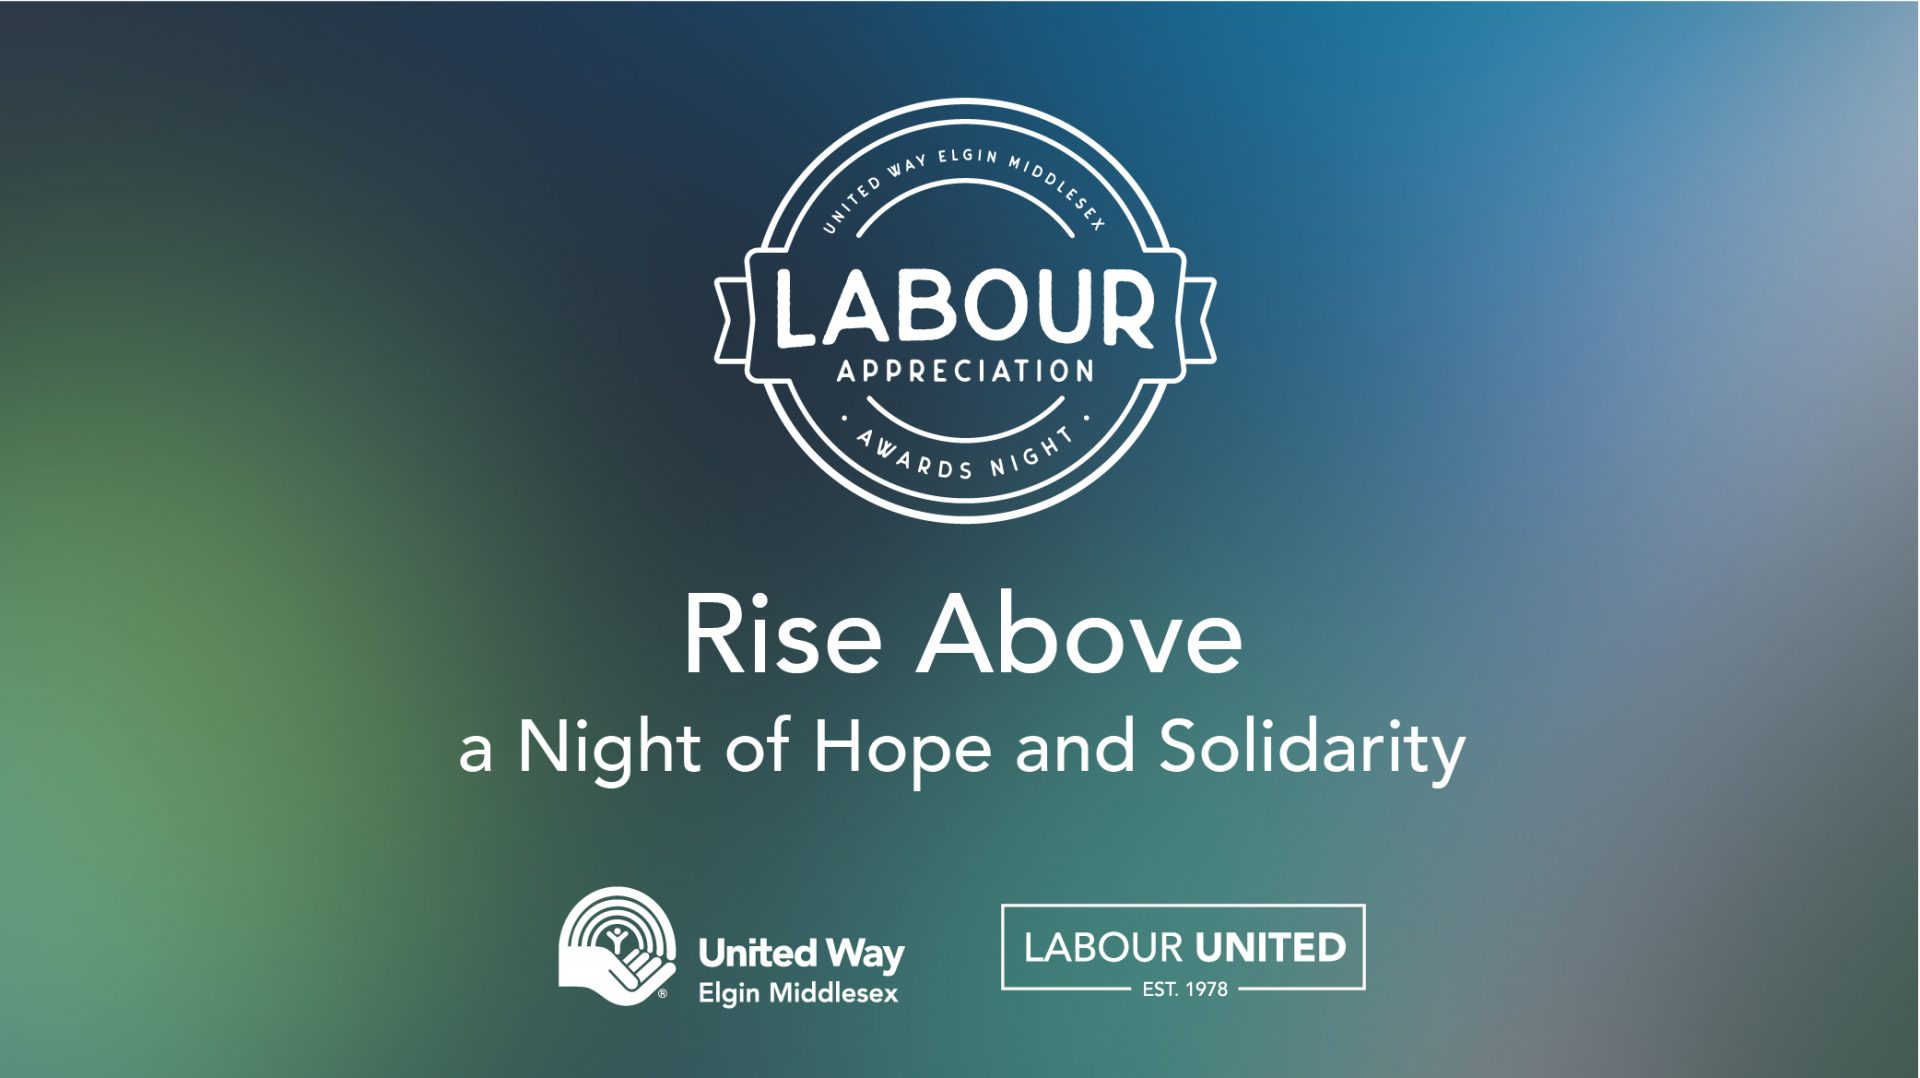 Labour Appreciation Awards Night, Rise Above a Night of Hope and Solidarity